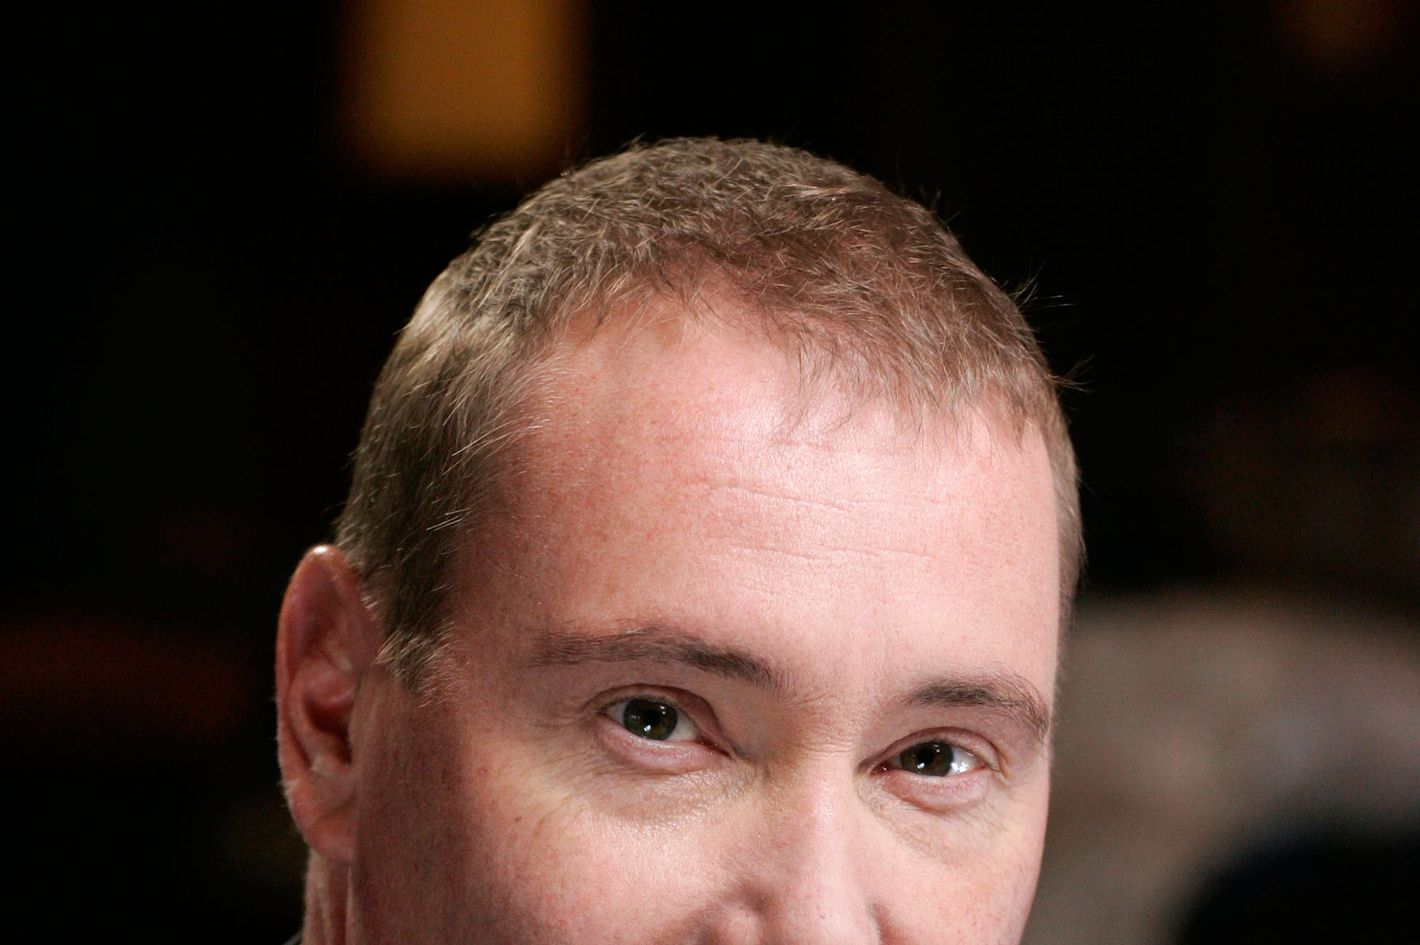 "Jeffrey Gundlach, founder and chief executive officer of Doubleline Capital LP, poses during an interview at the Beverly Hills Hotel in Beverly Hills, California, U.S., on Wednesday, Oct. 20, 2010. Gundlach, the lone bond manager to beat Bill Gross in the past 5, 10 and 15 years, said there won't be any ""new normal"" to guide investors until policy makers repair the damage caused by the financial crisis."